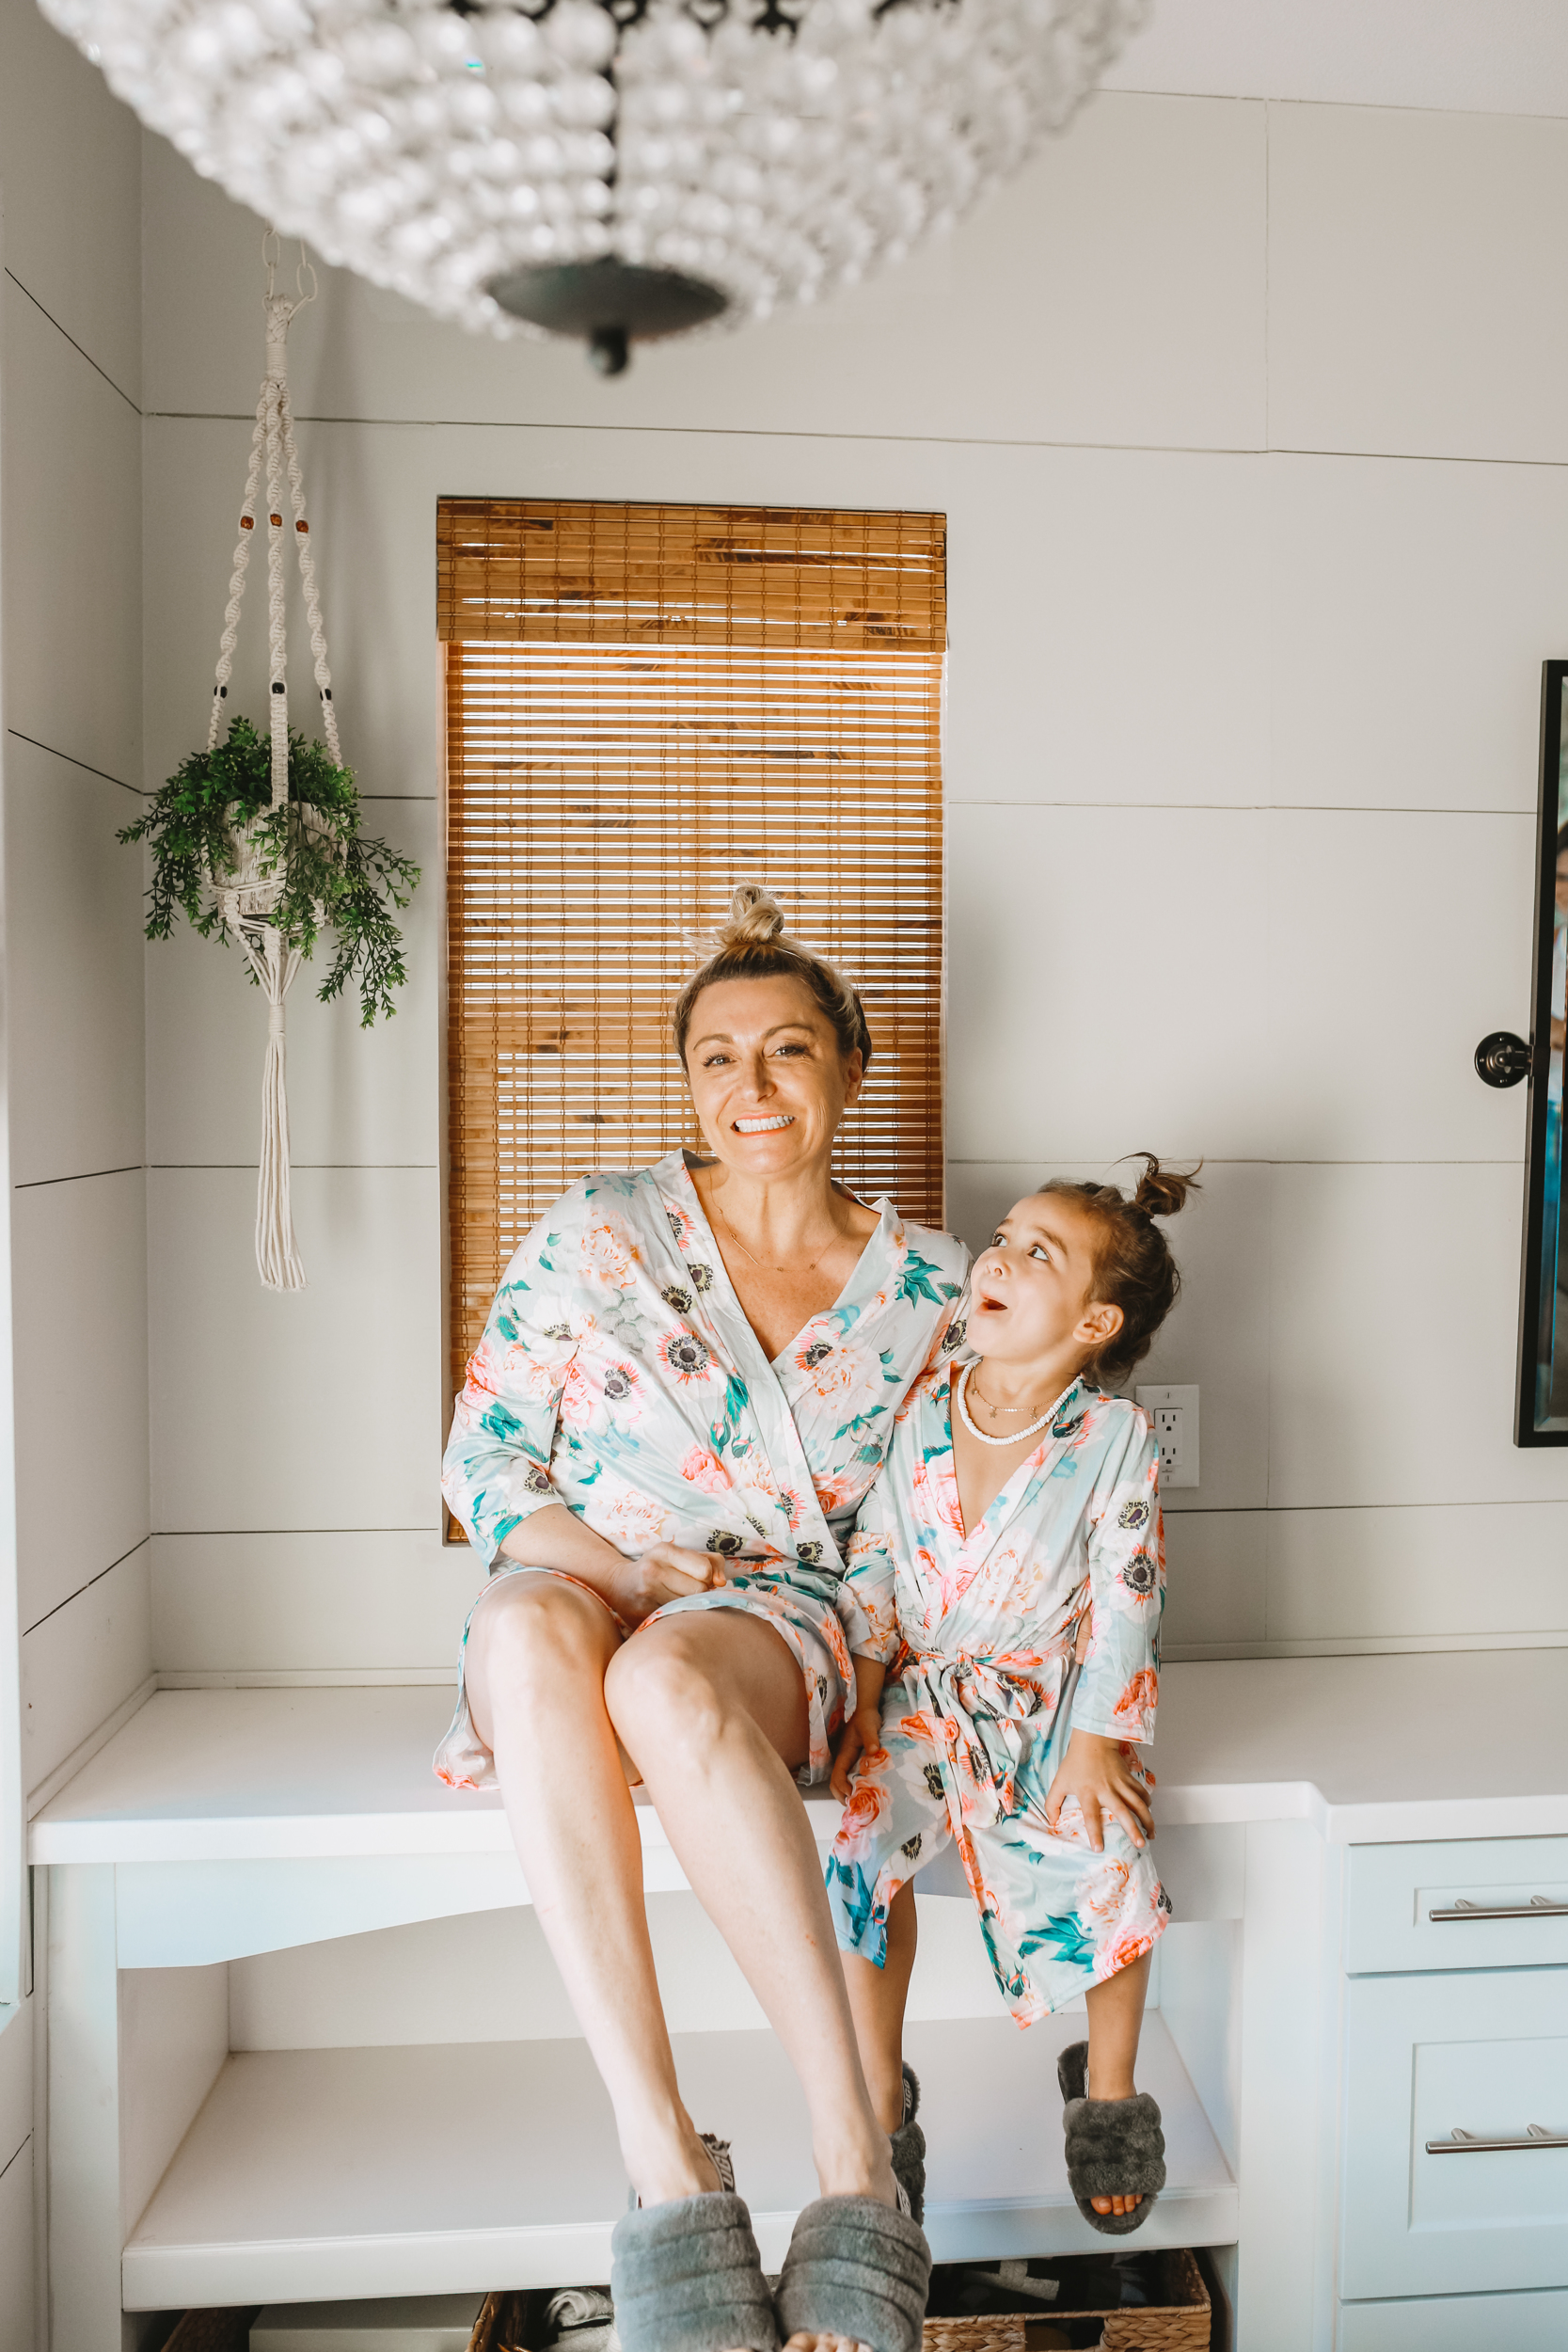 mom and son in matching bath robes